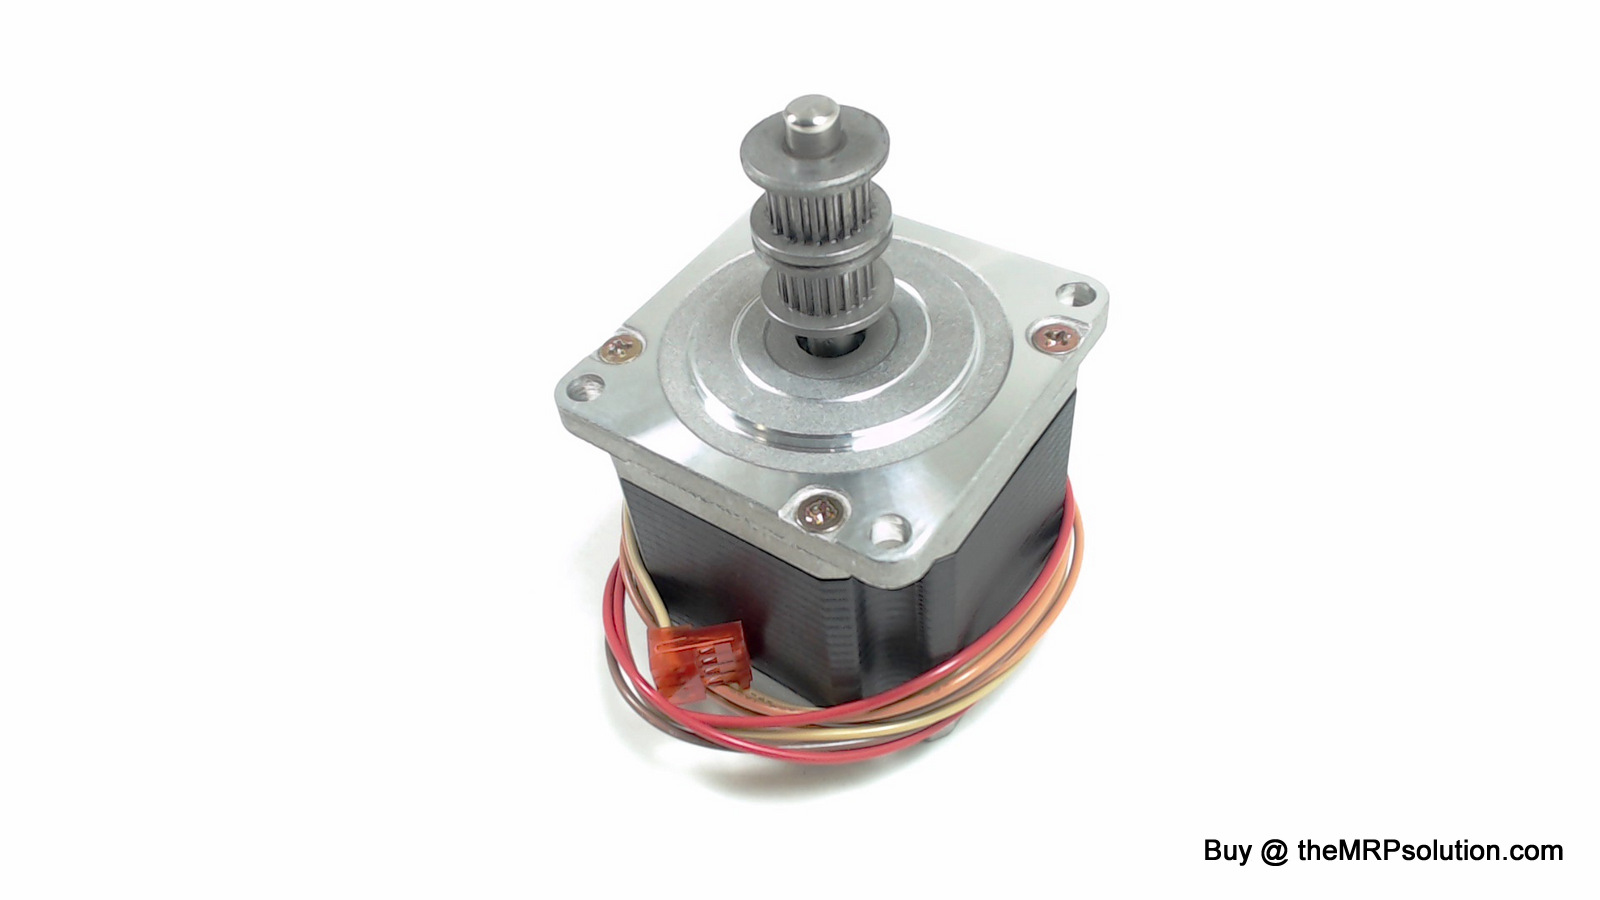 ZEBRA 46197 STEPPER MOTOR Refurbished